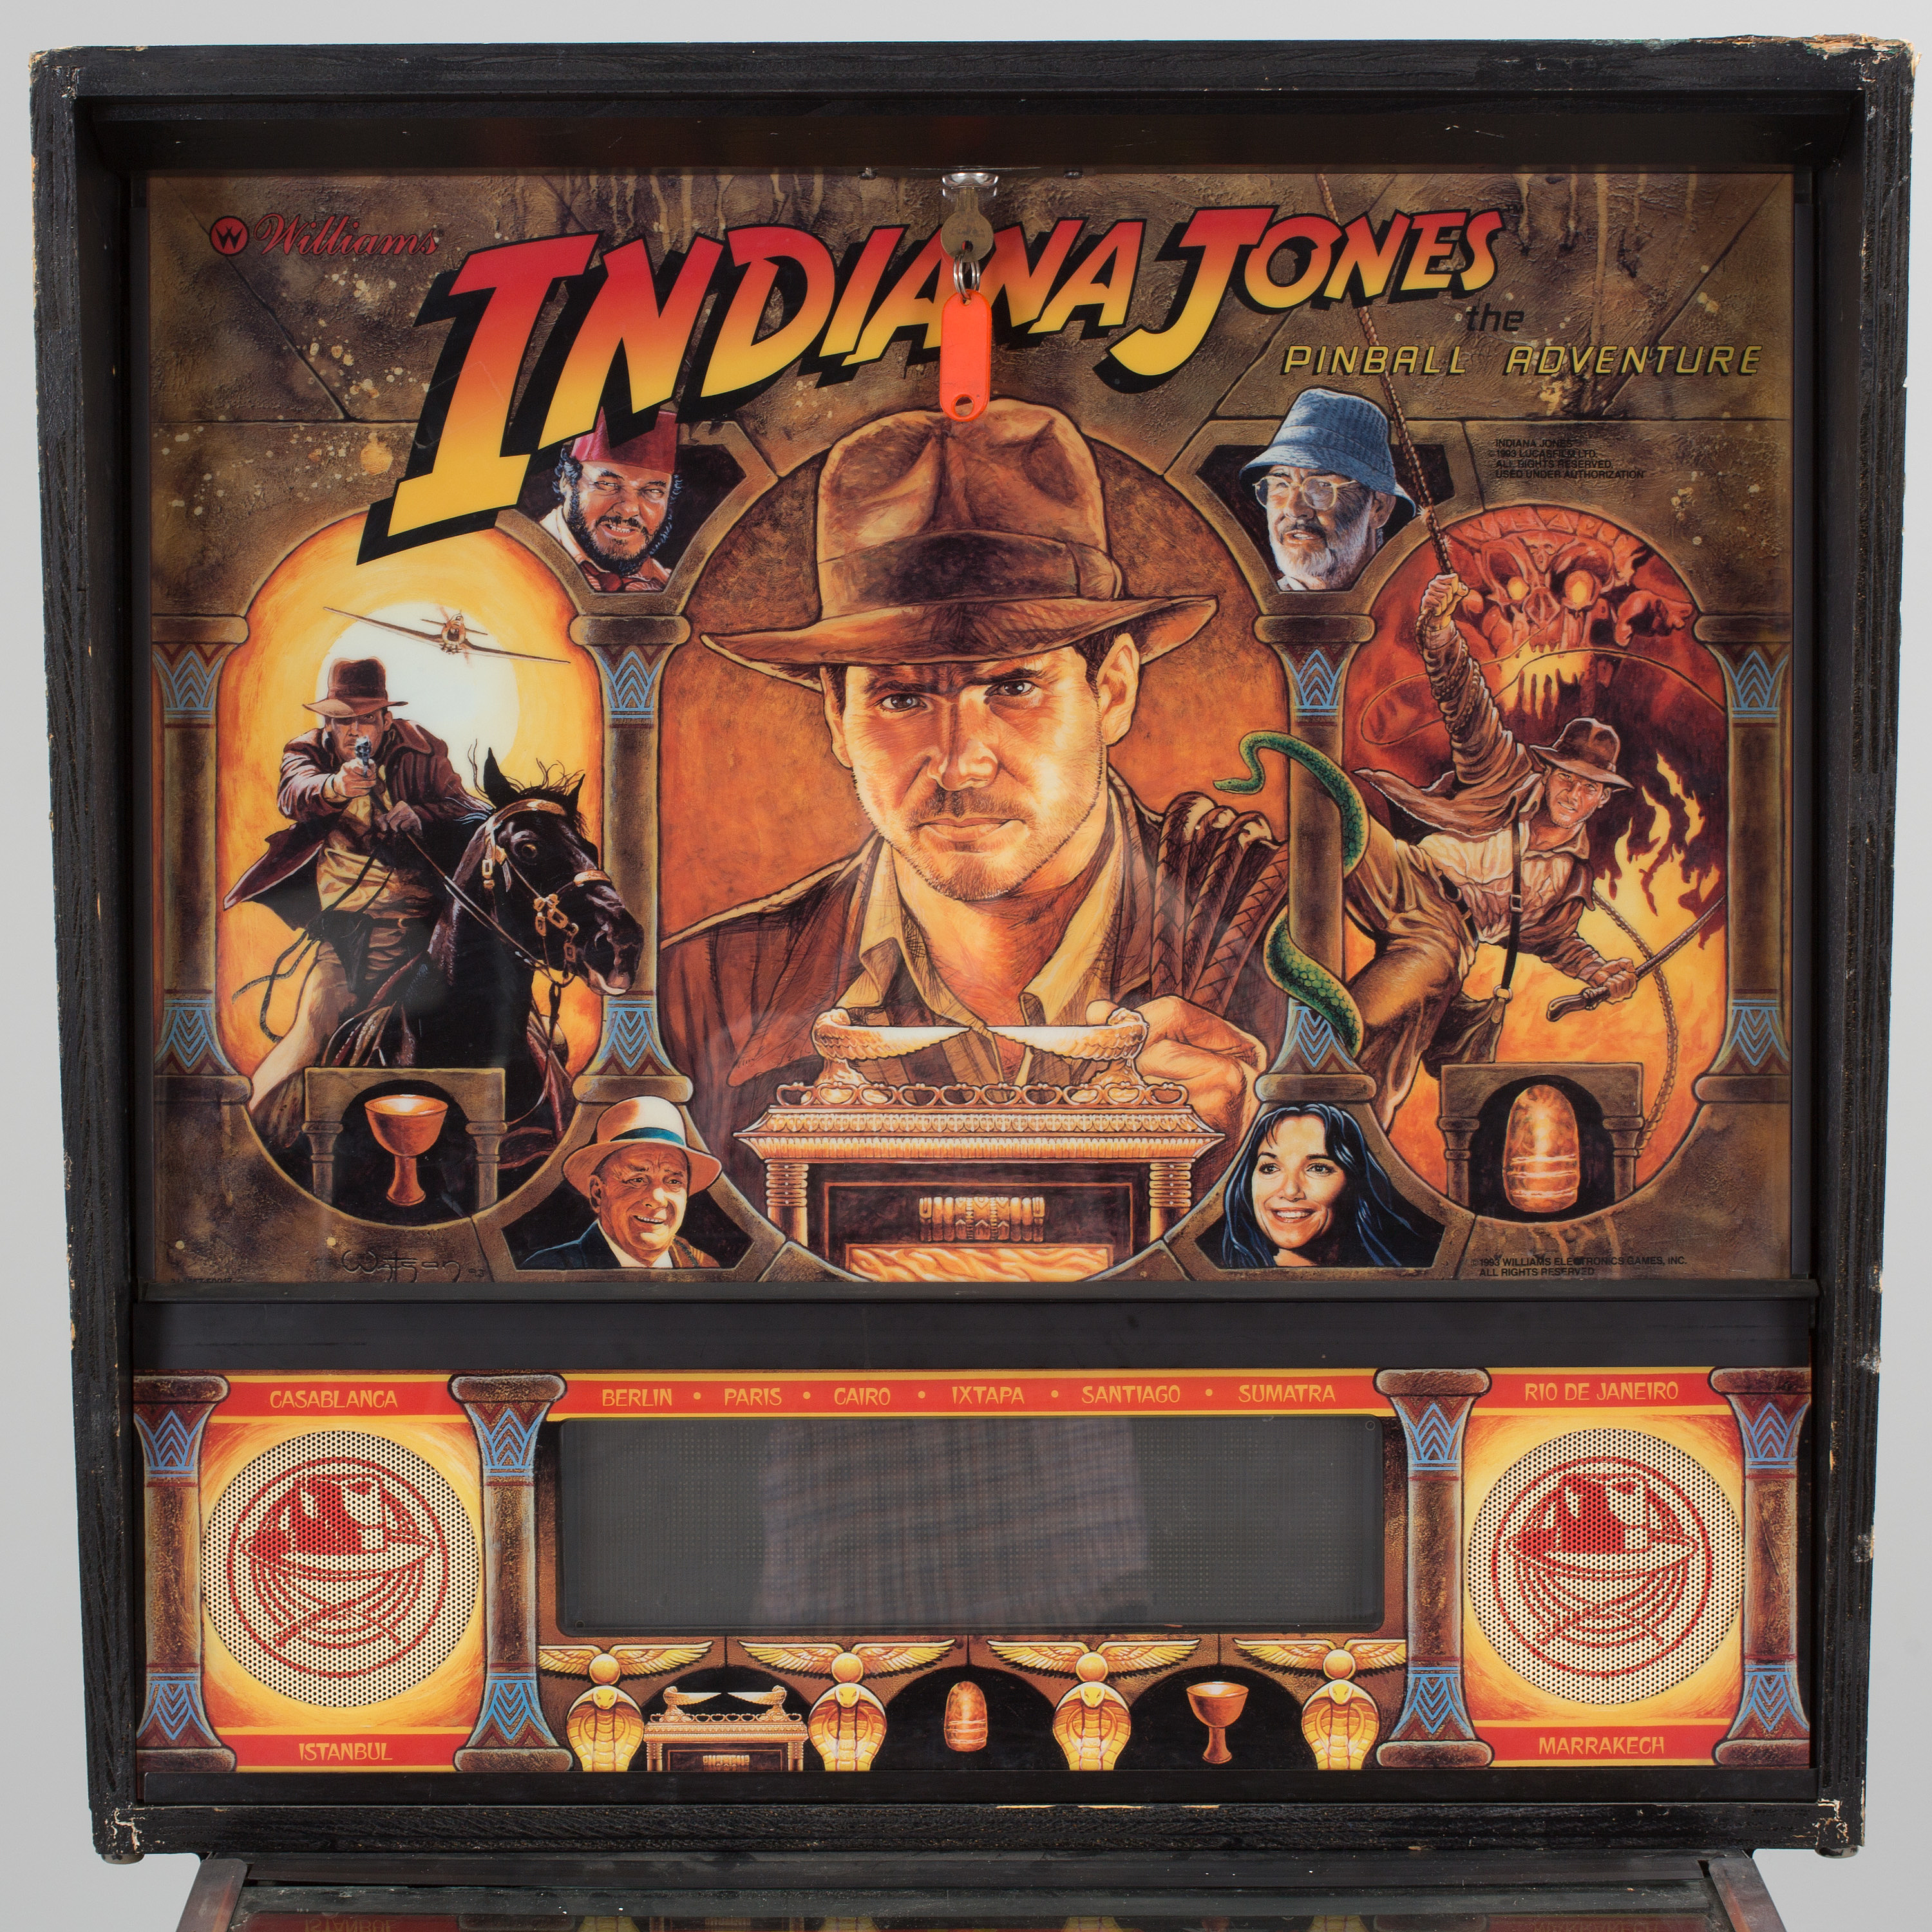 a Indiana Jones pinball-game by Williams USA 1990's  - Bukowskis